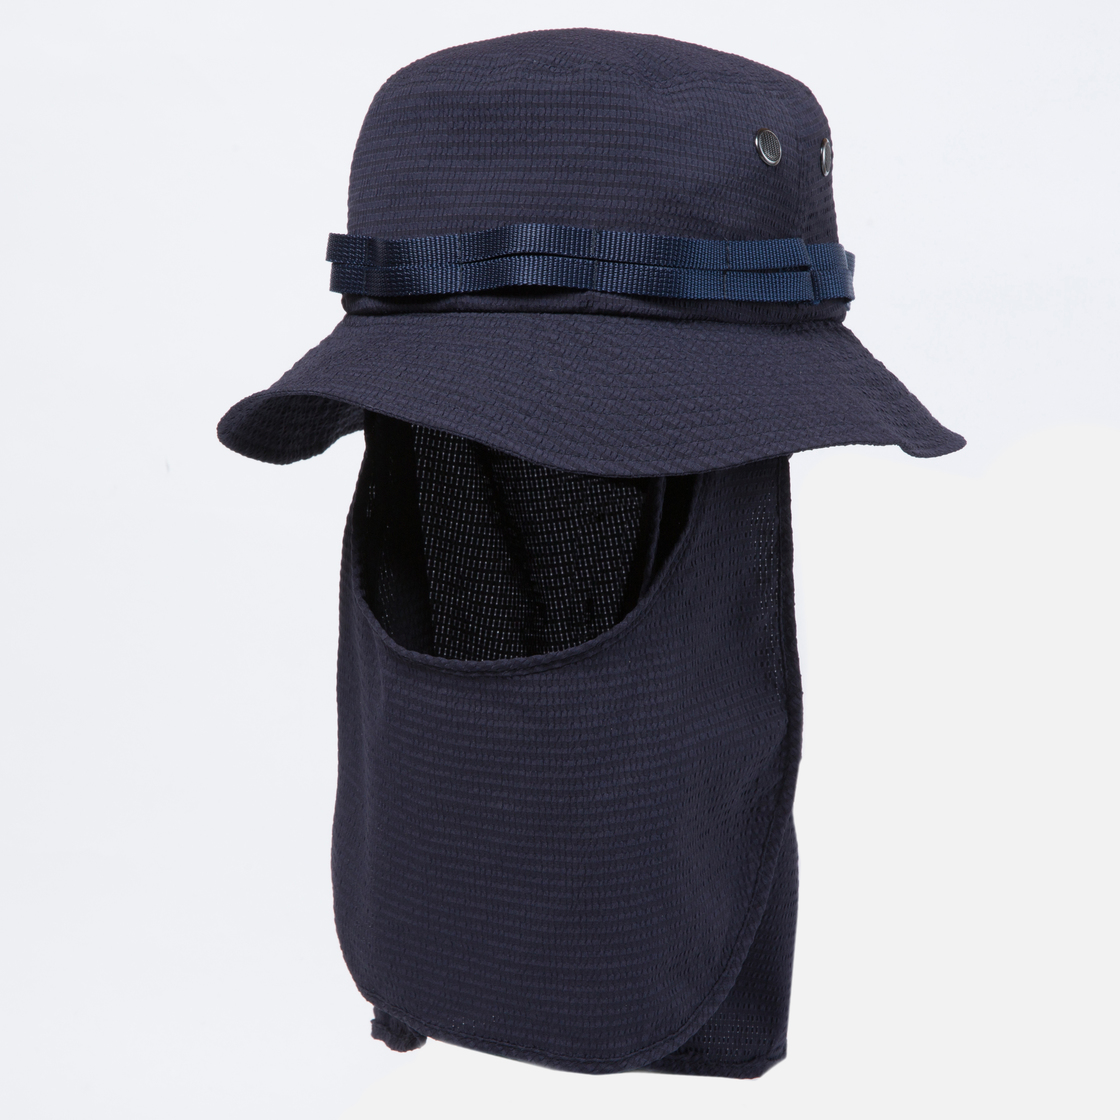 Dry Mesh Shade Cover Hat